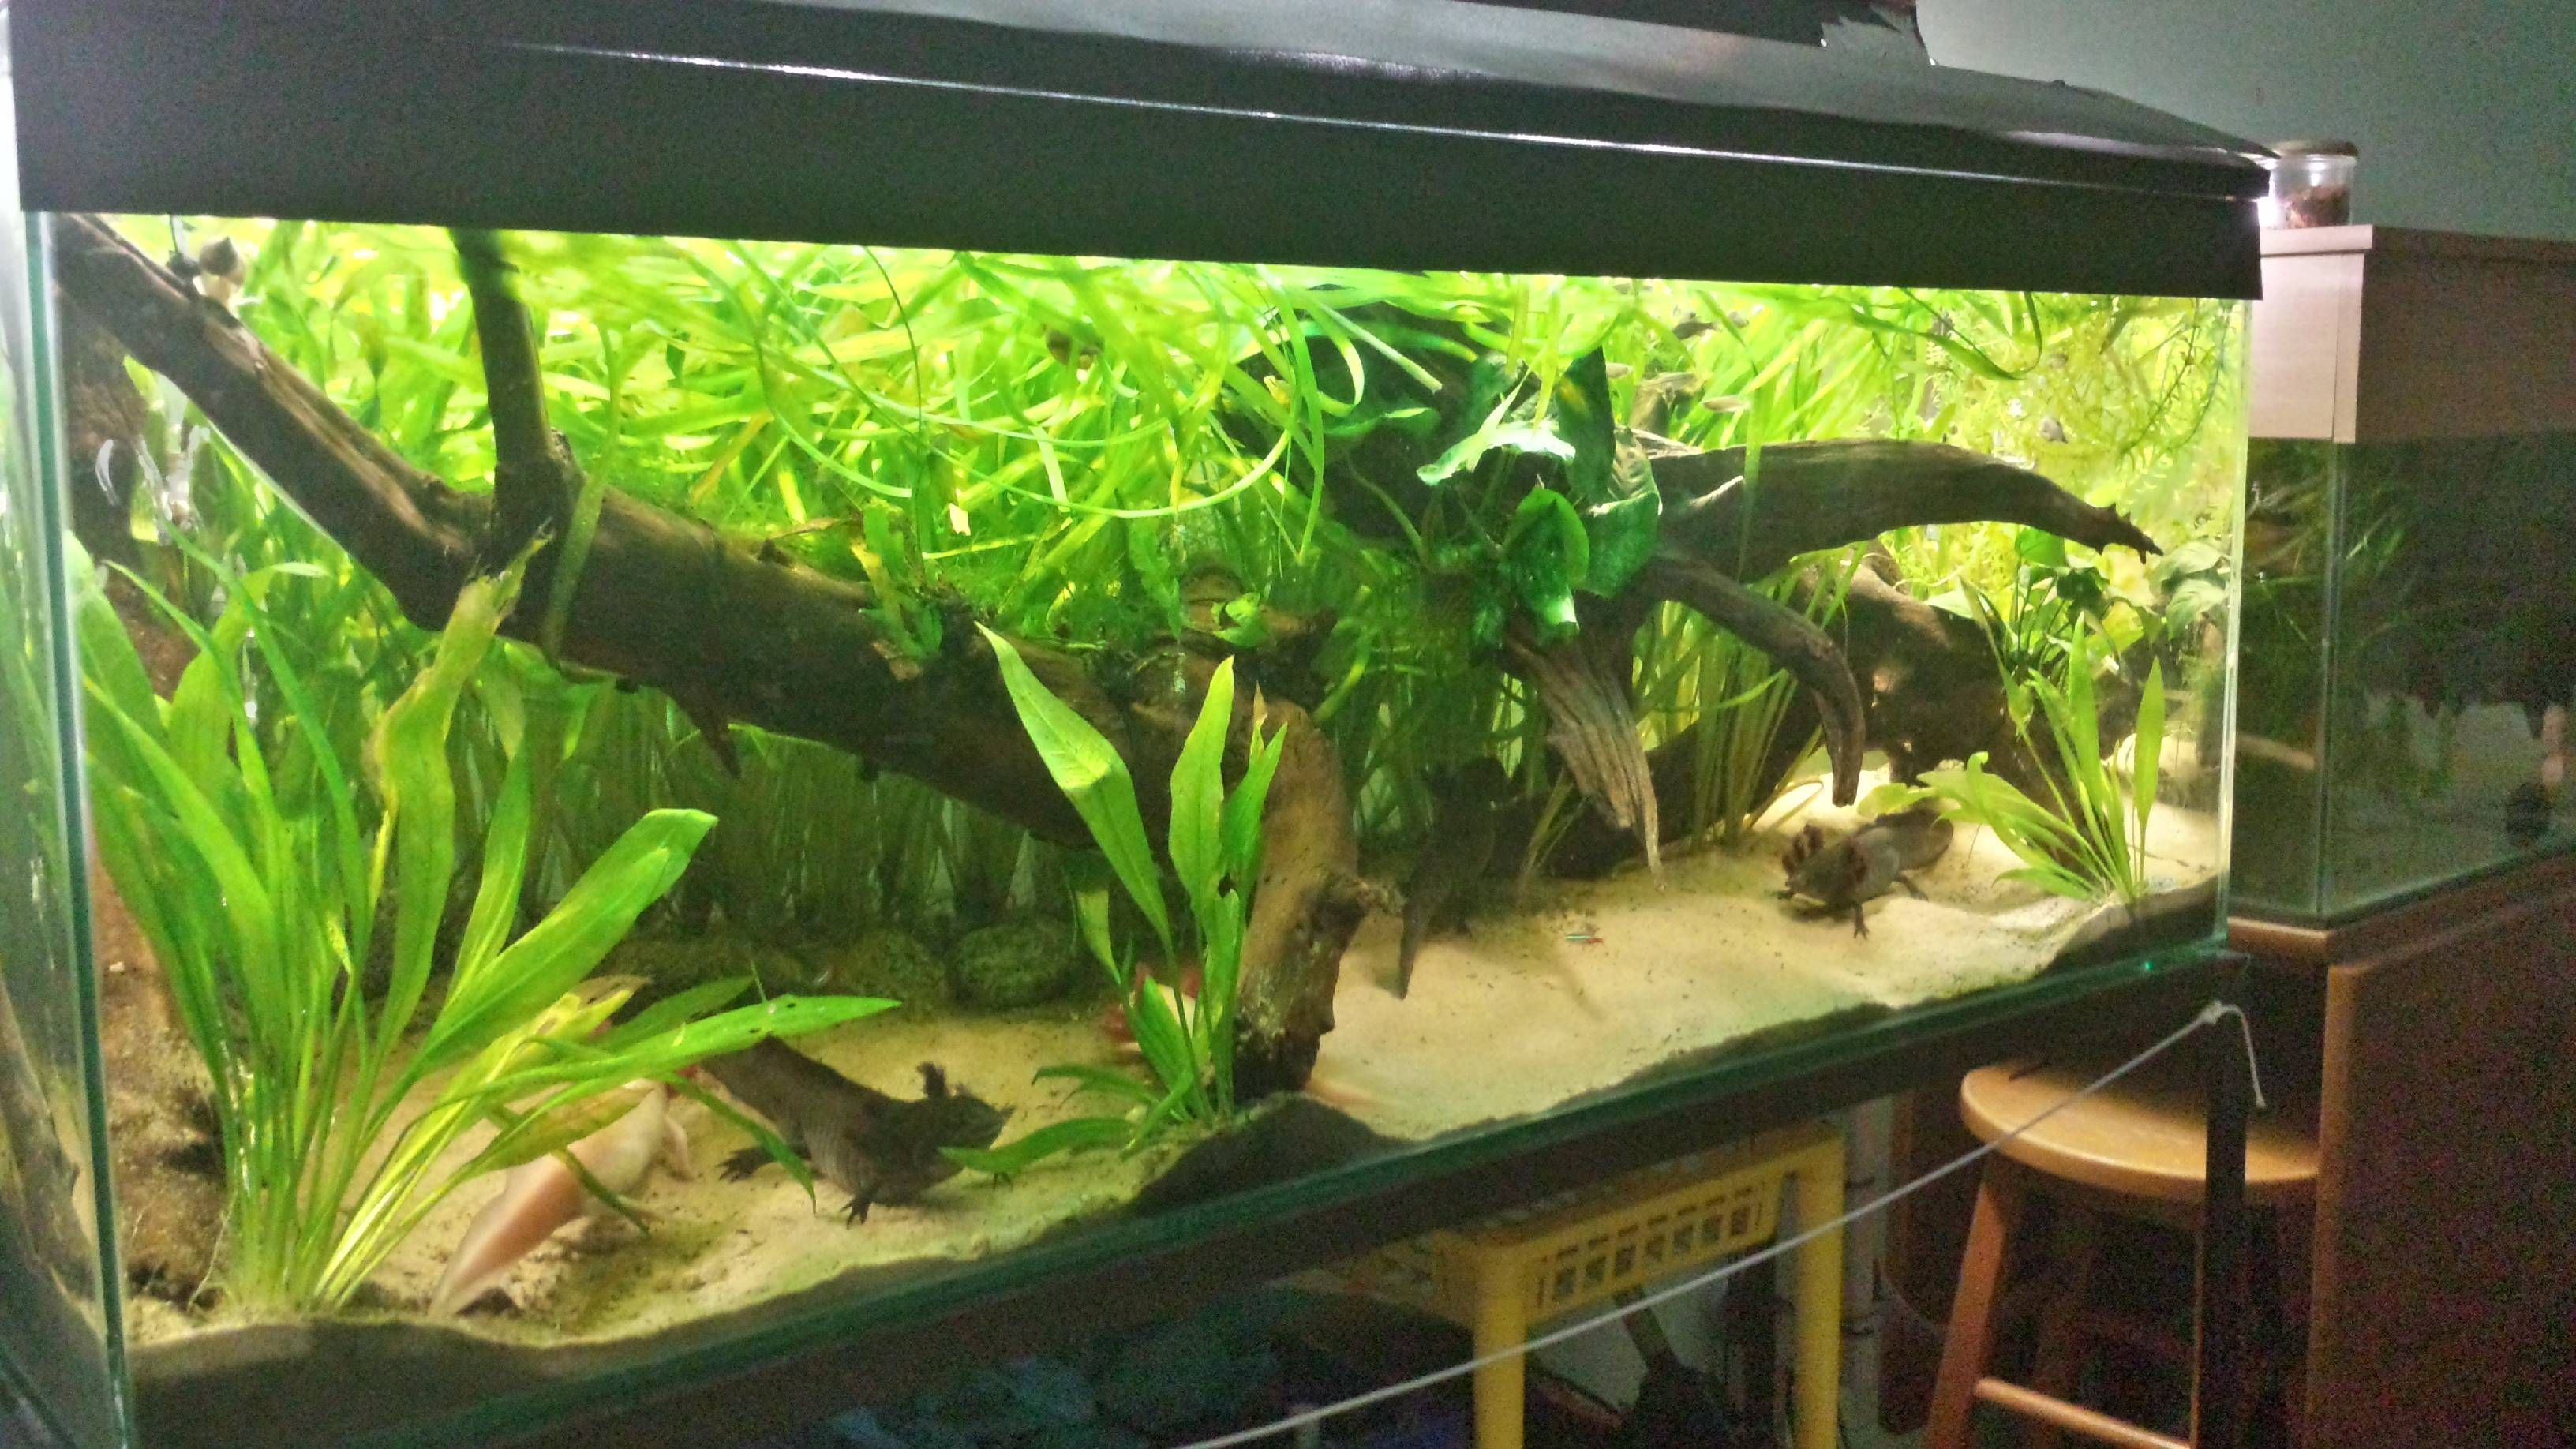 Neon tetra for sale aquariumfish net - Axolotl Riverbank Tank